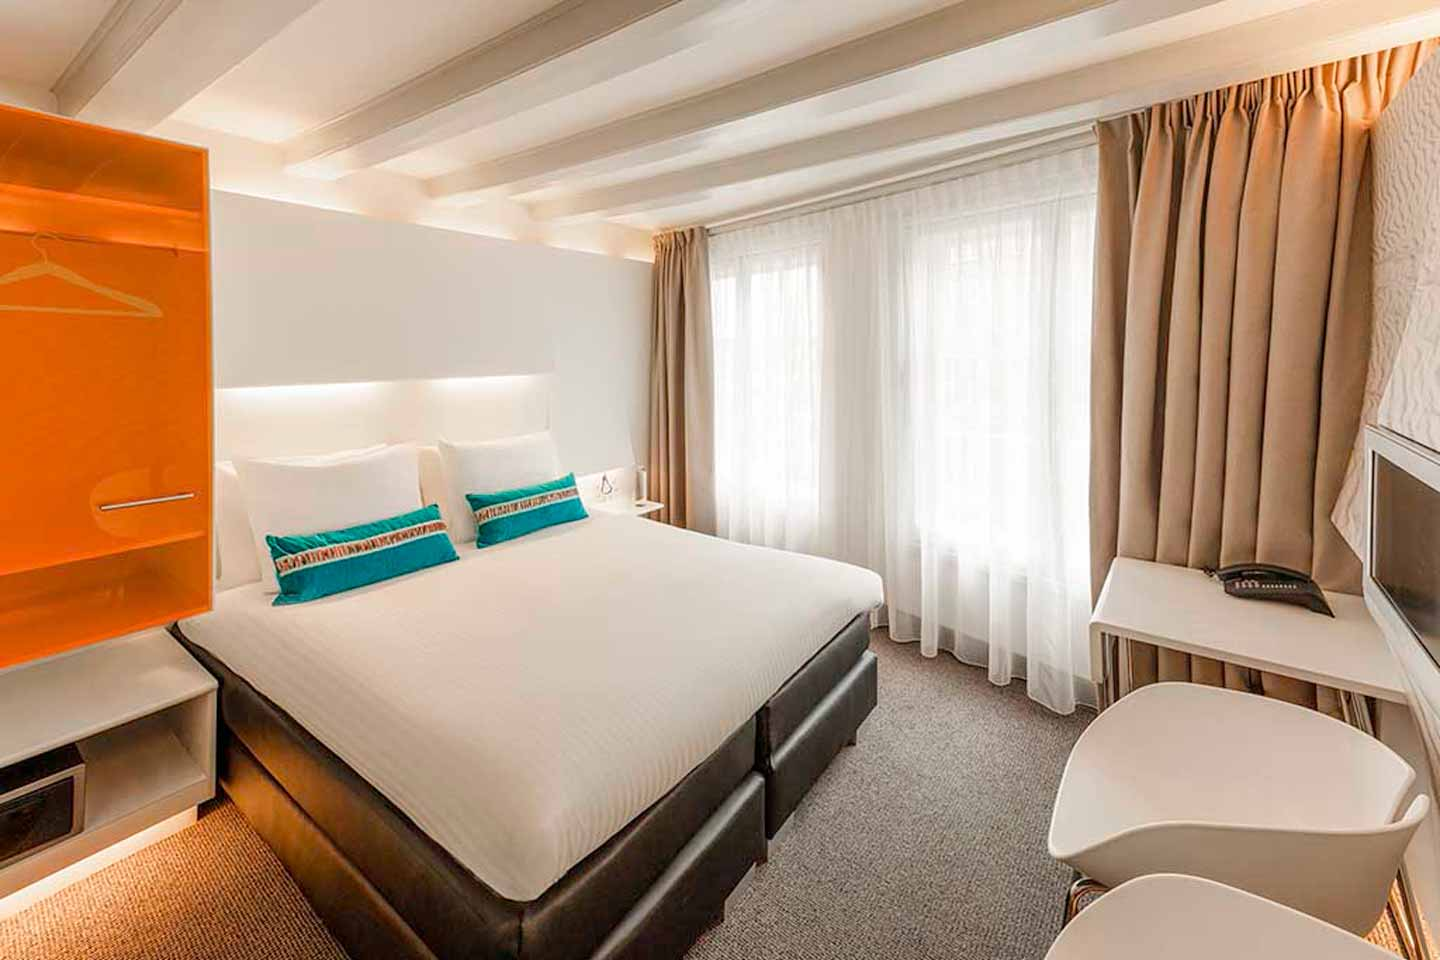 ibis-styles-amsterdam-central-station-hotel